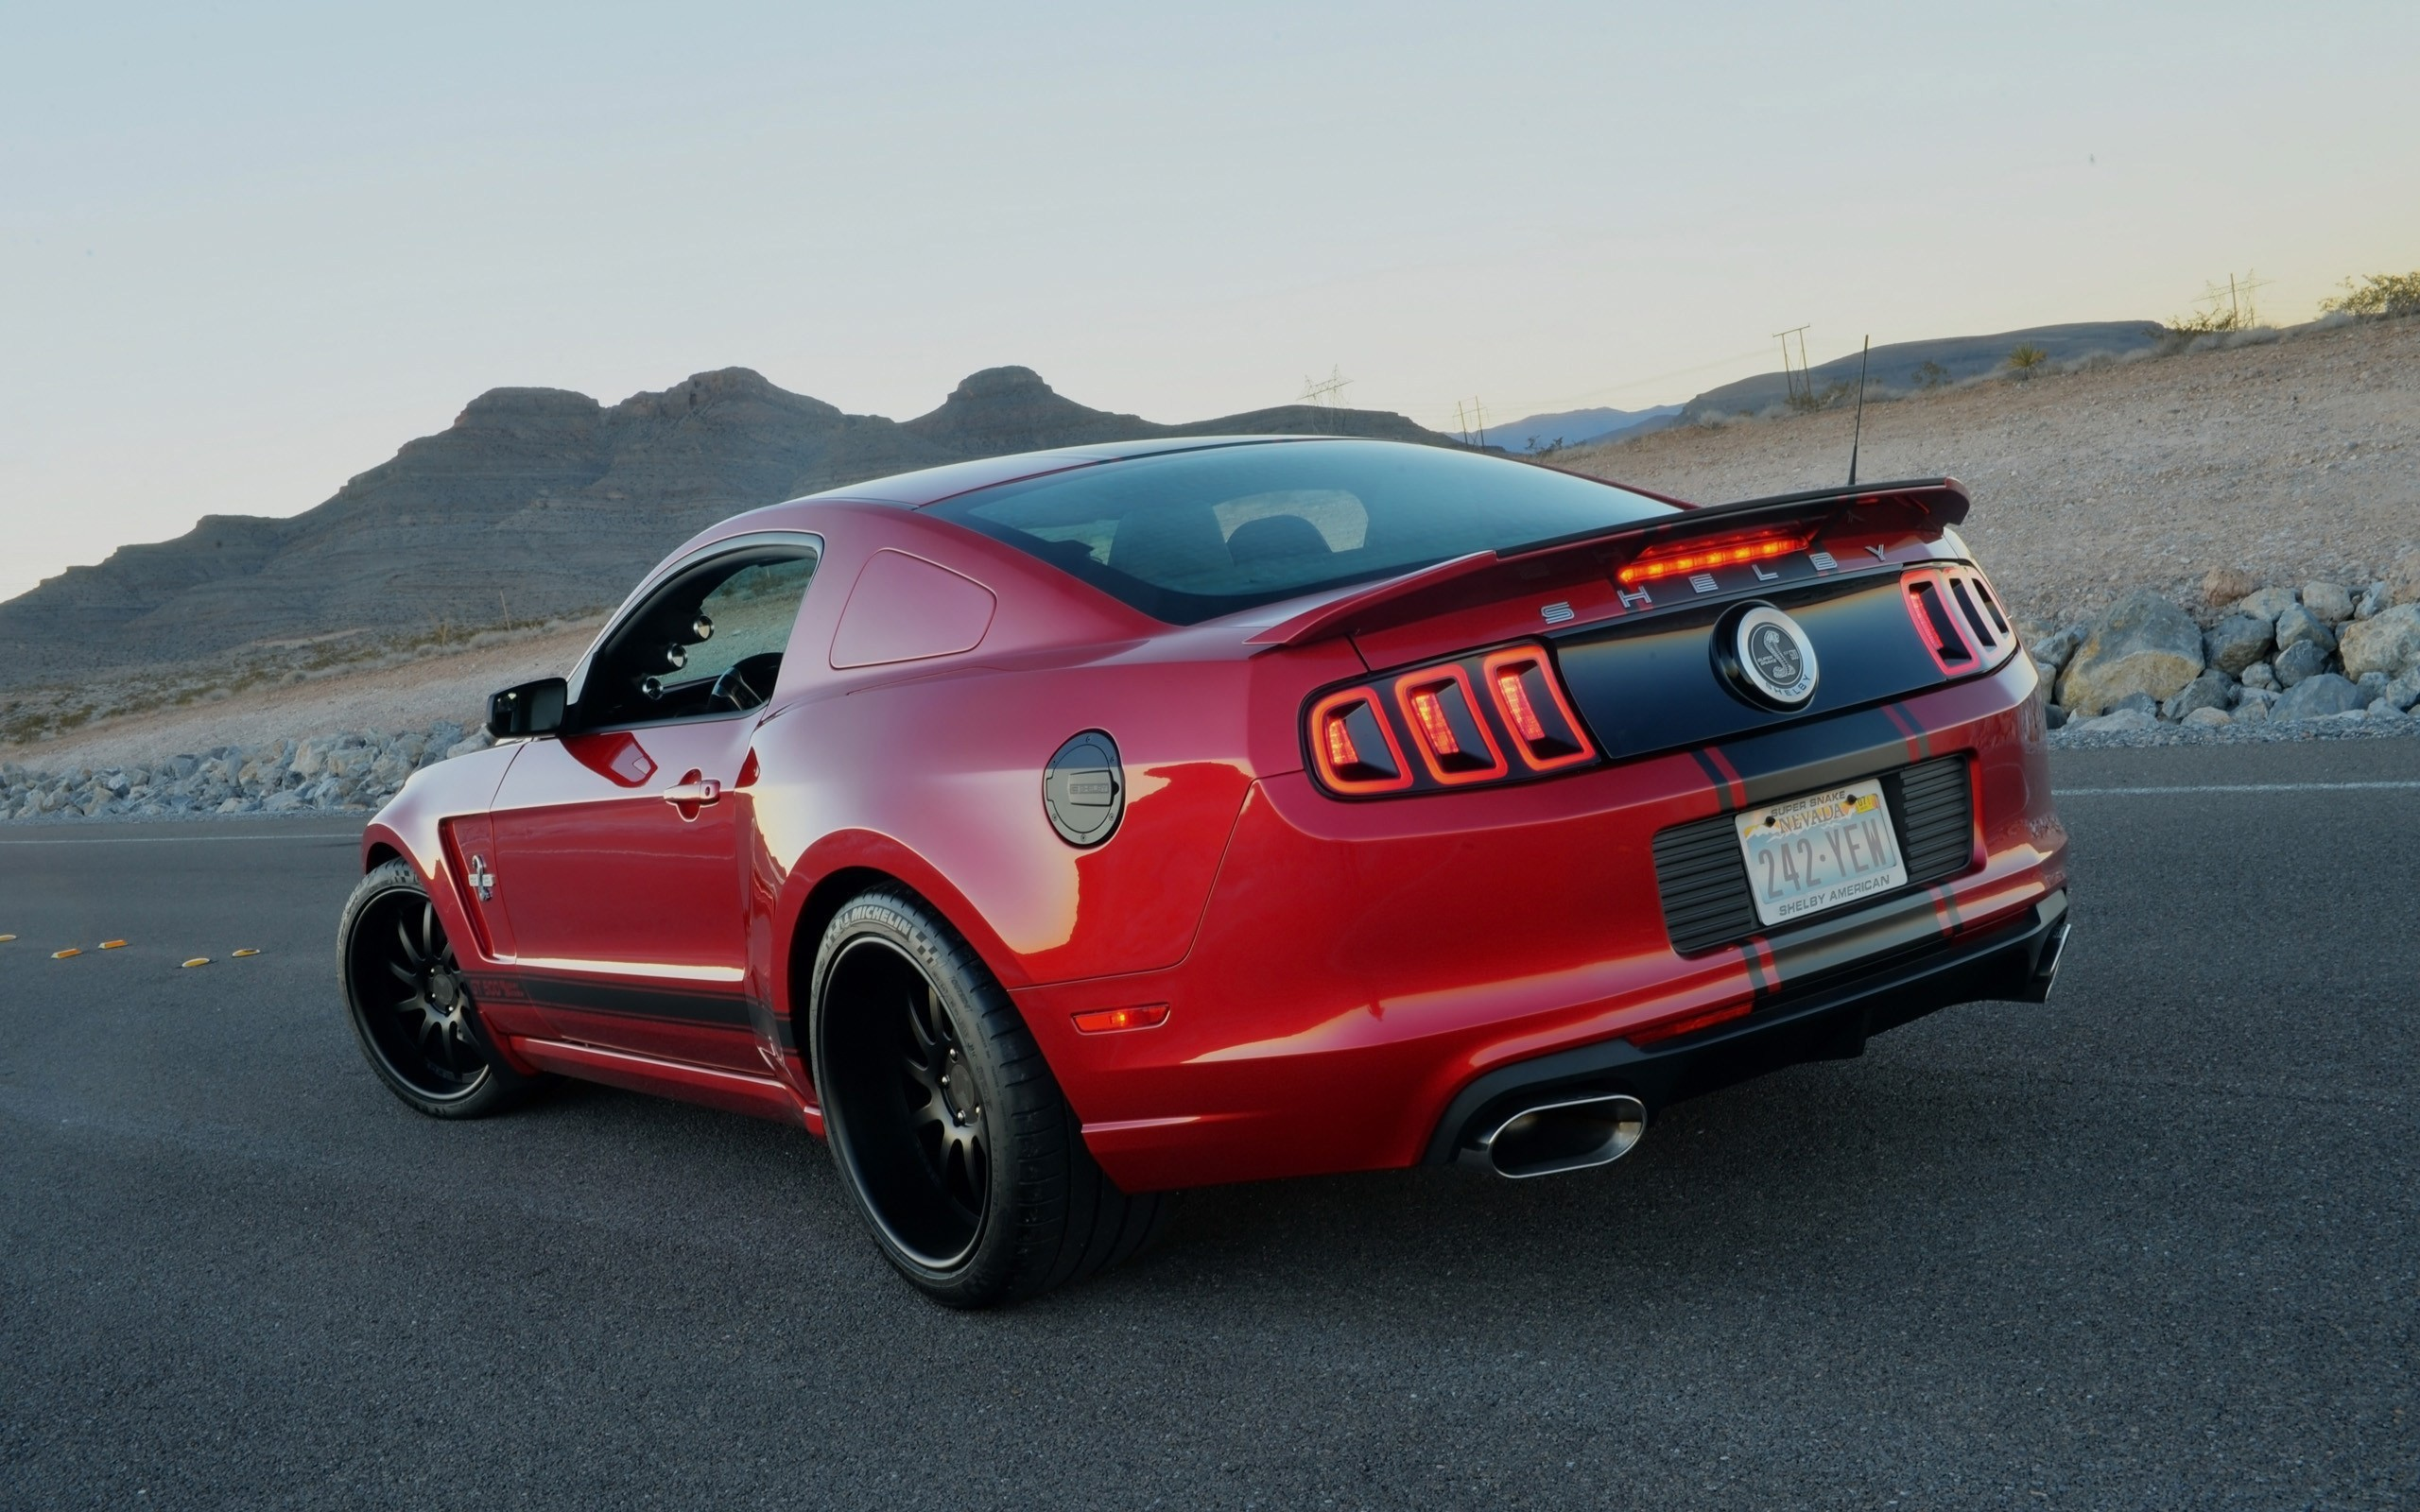 Res: 2560x1600, Ford Mustang GT500 Super Schlange 2014 Bild 97 Cobra Wallpaper